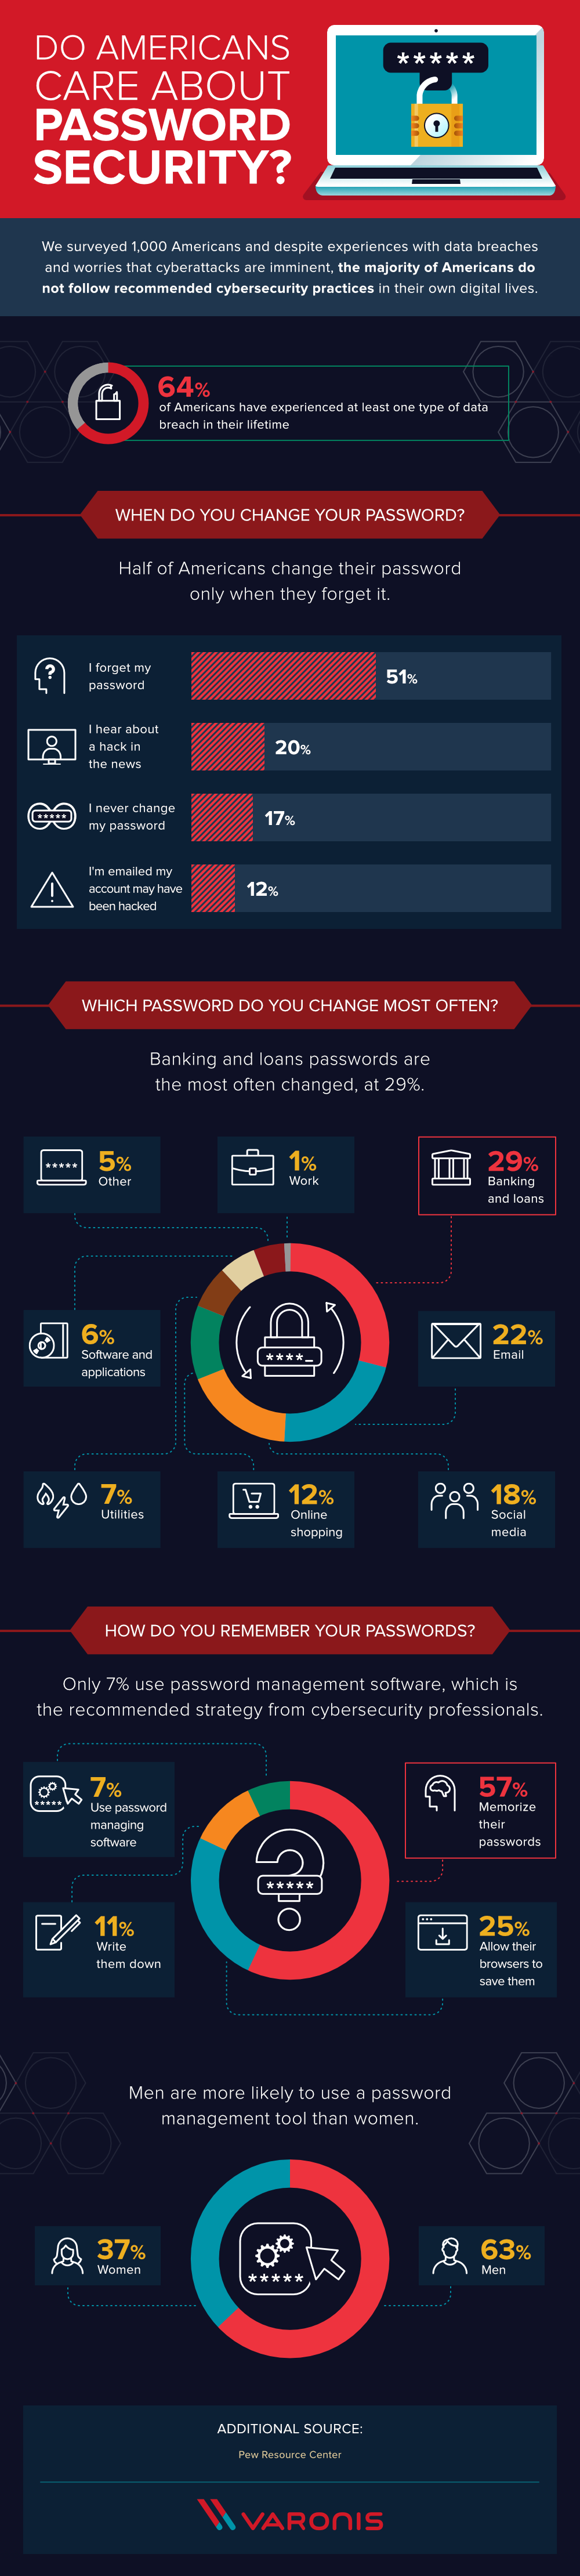 Ever alter passwords for Americans? #infographic